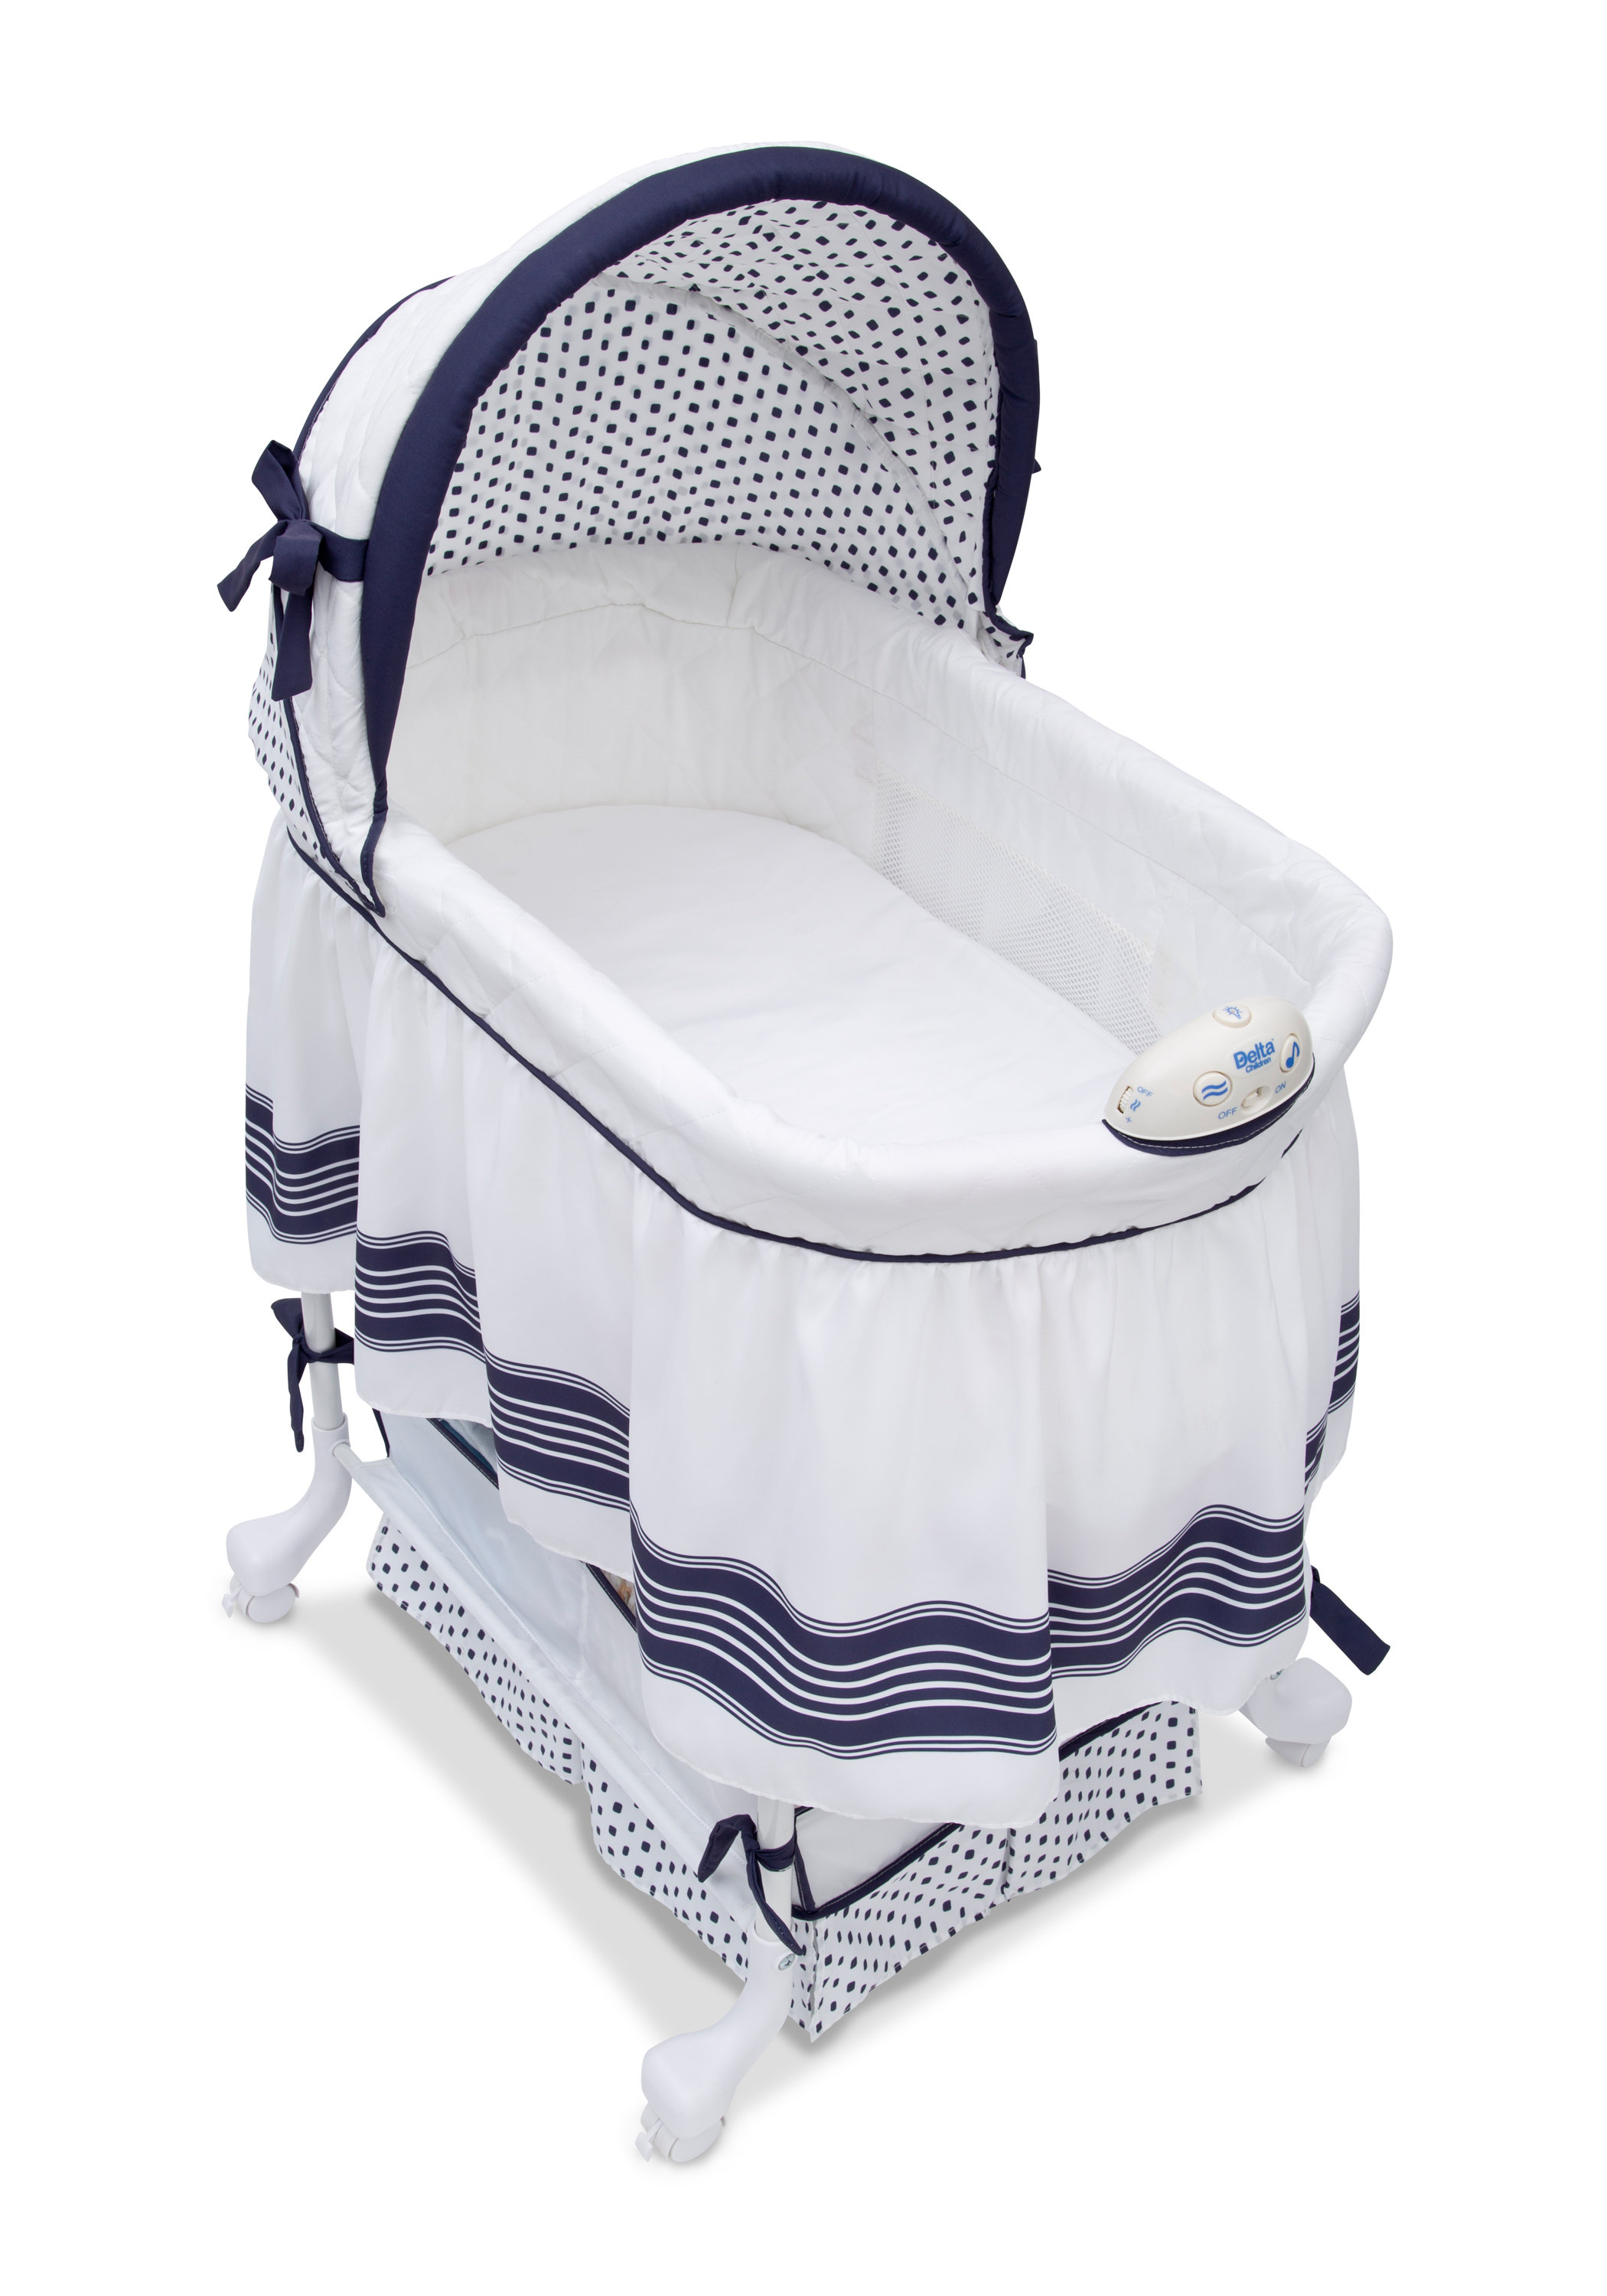 Delta Children Smooth Glide Bassinet & Reviews | Wayfair Regarding Bailey Mist Track Arm Skirted Swivel Gliders (Image 10 of 20)